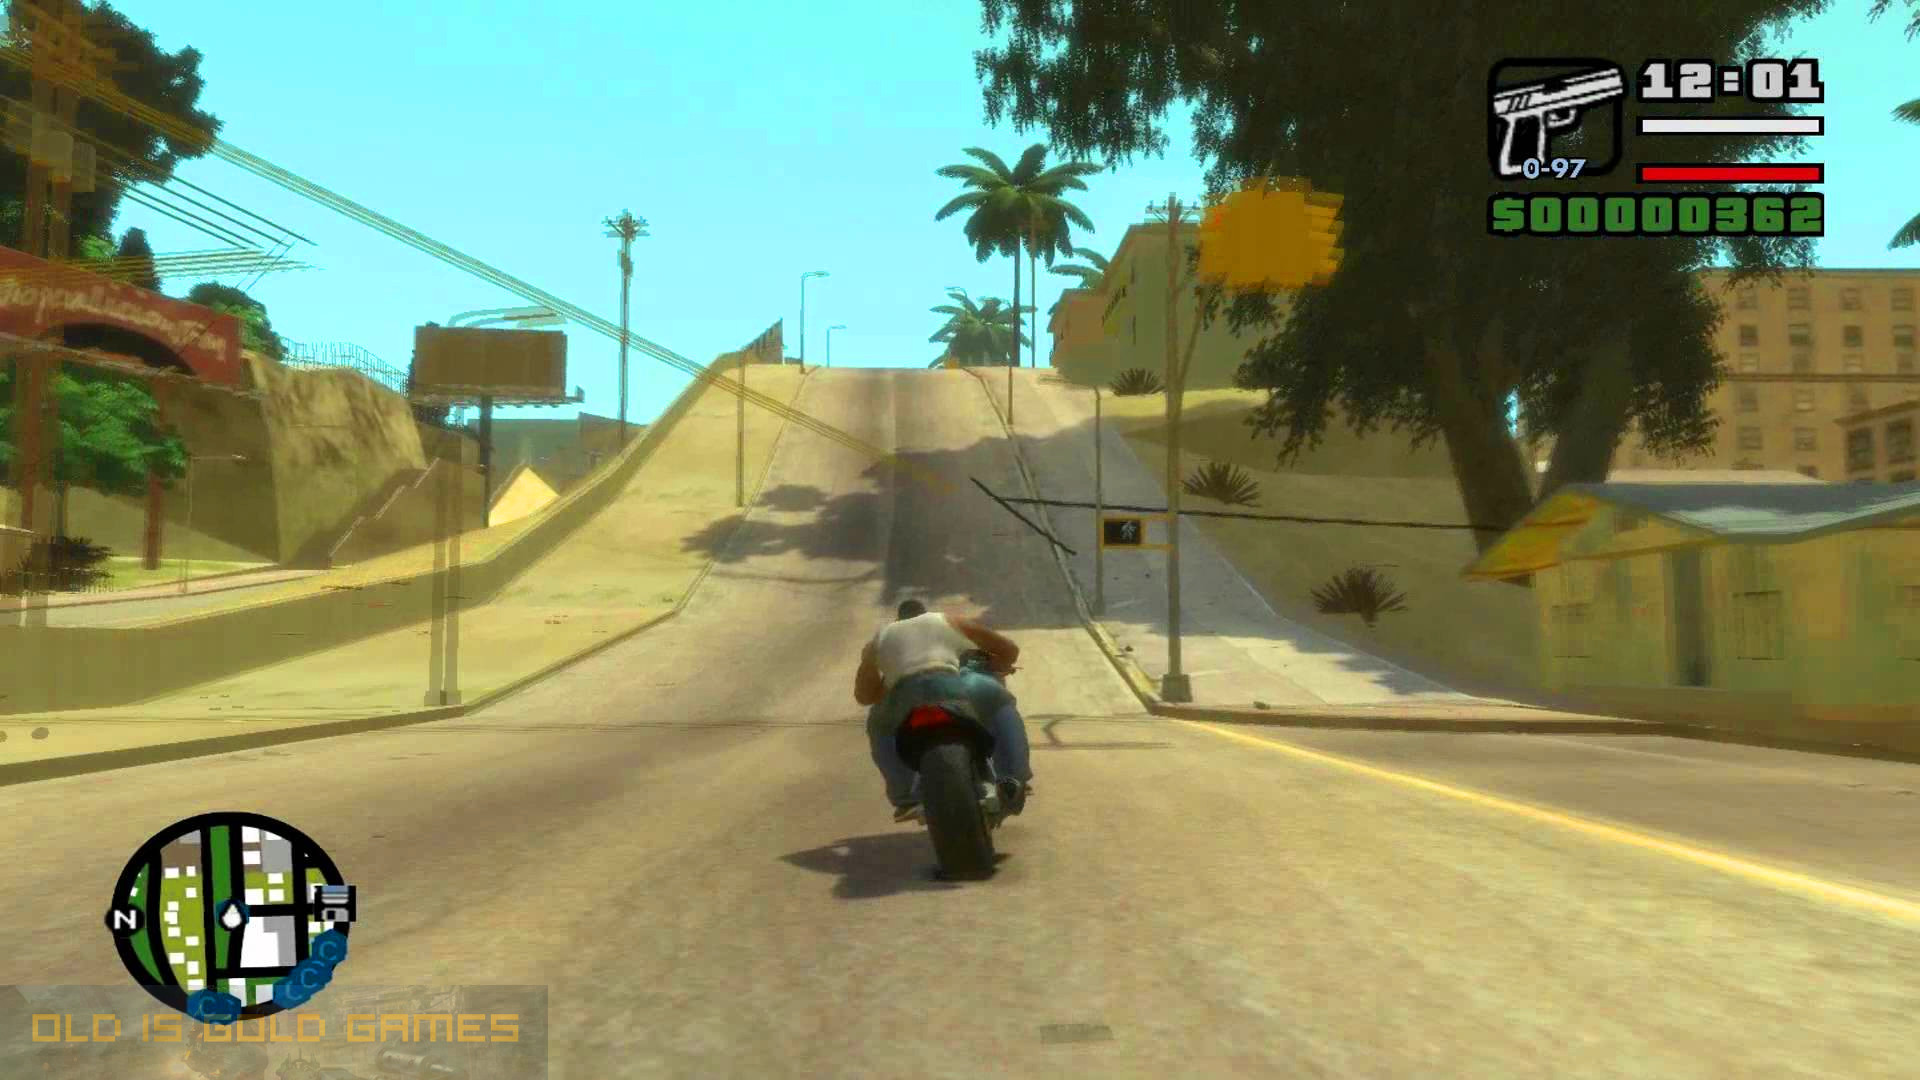 GTA San Andreas DOwnload For Free